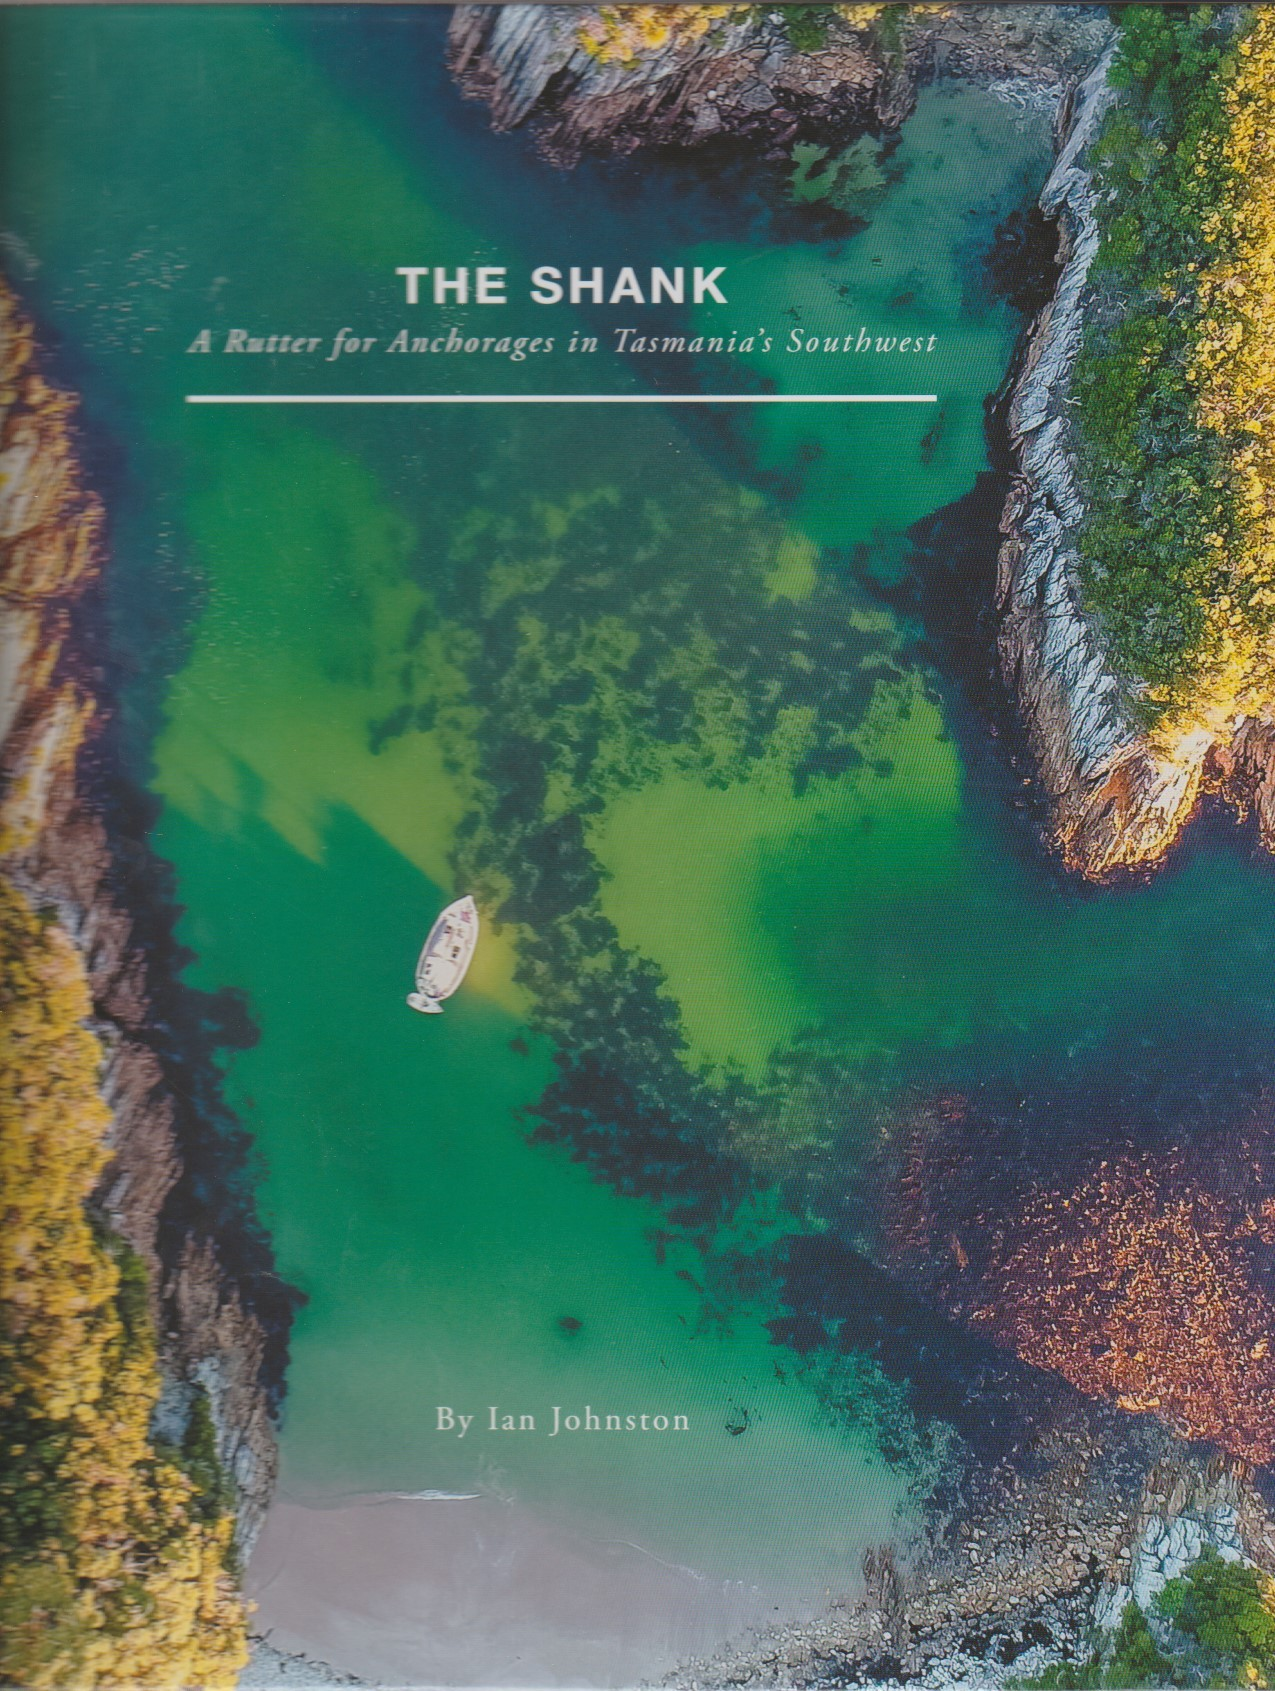 The Shank - A Rutter for Anchorage in Tasmania's Southwest